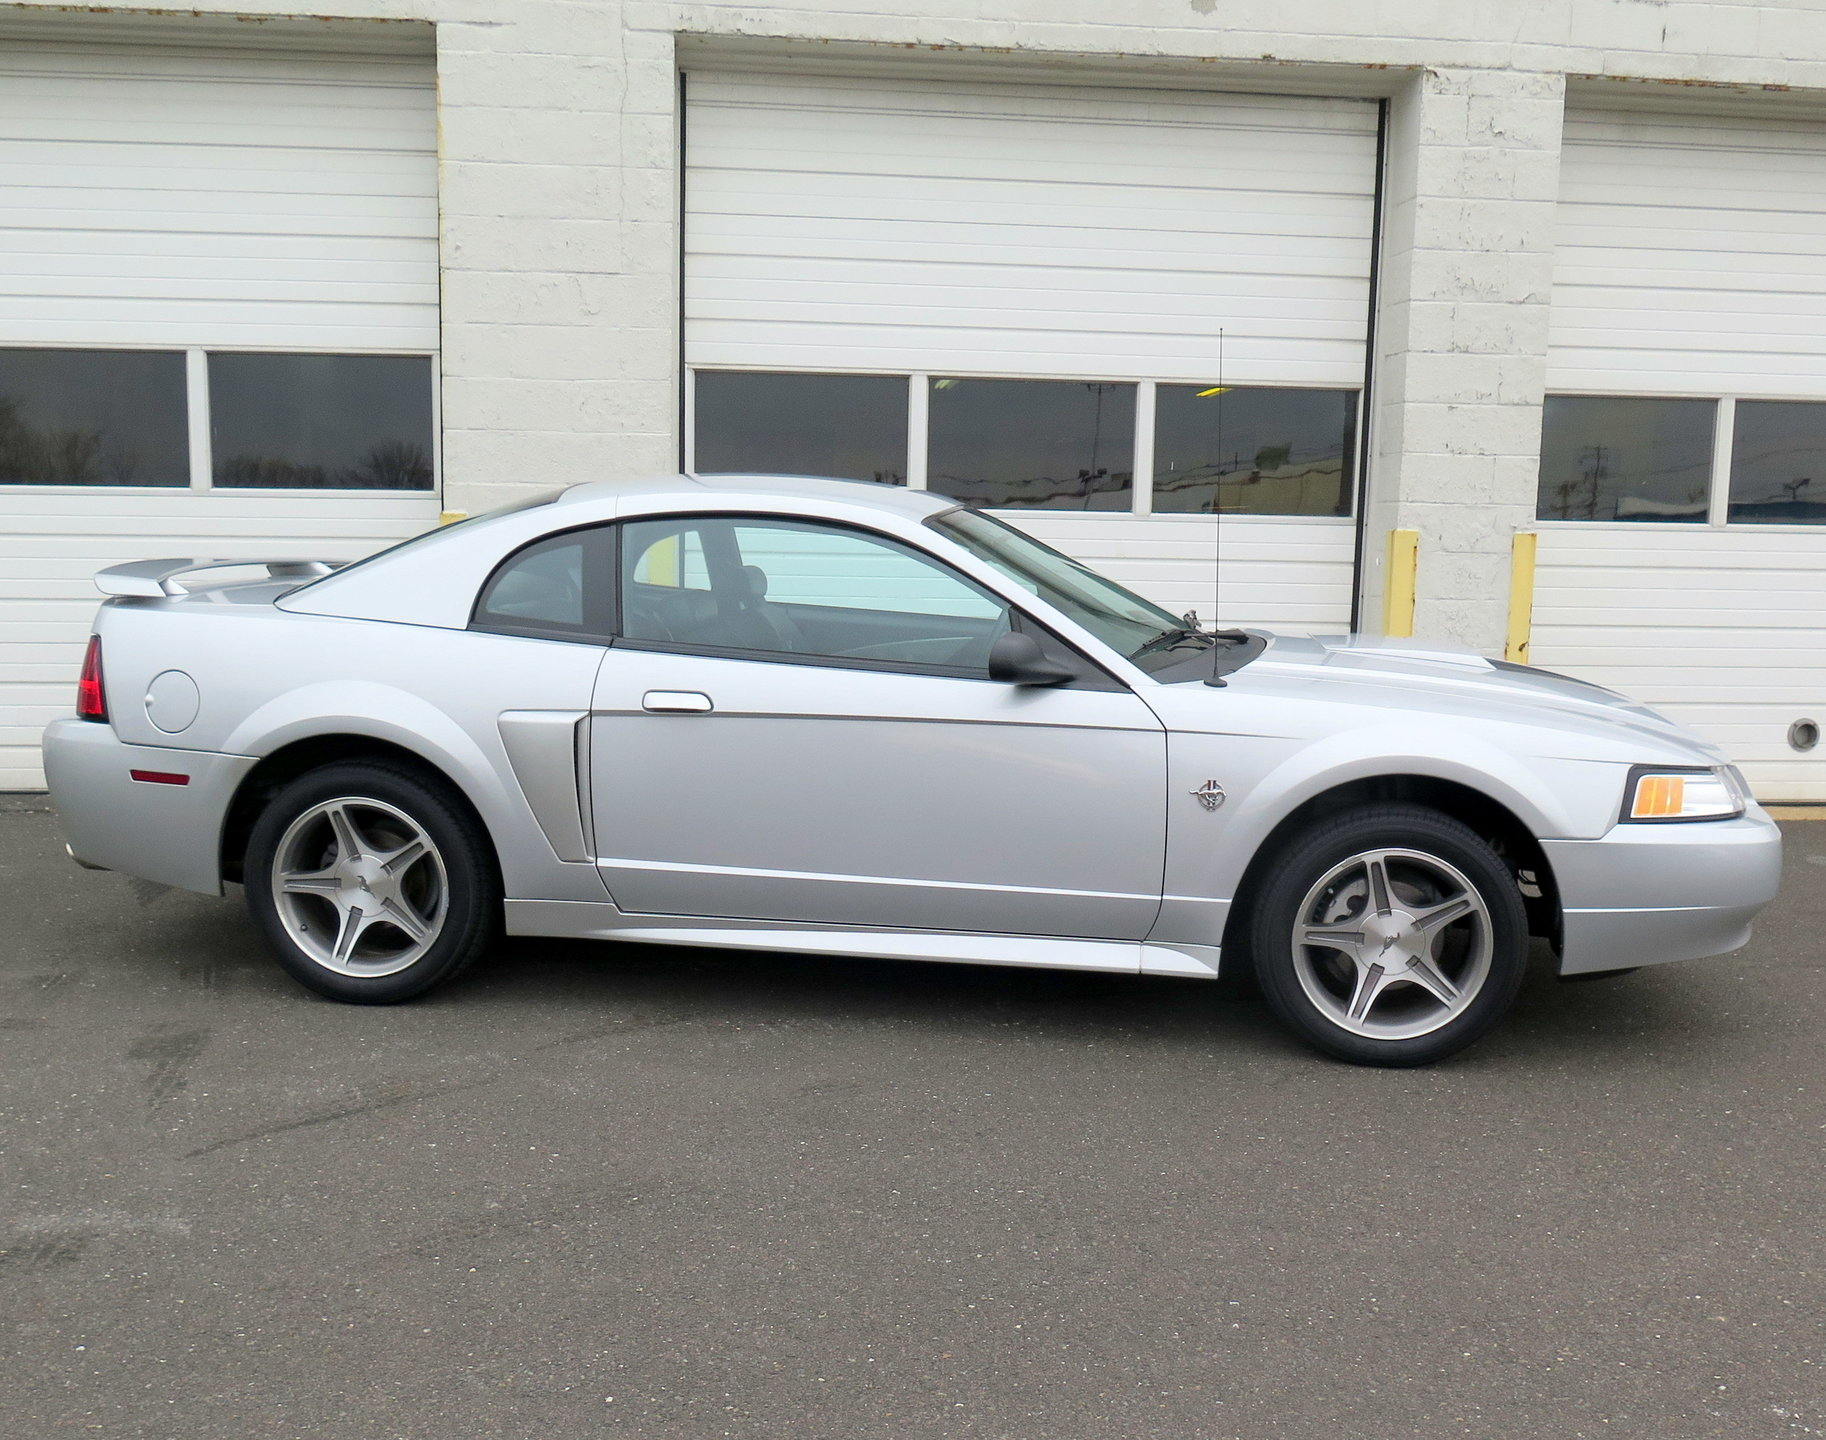 1999 Ford Mustang Gt Old Forge Motorcars Inc Mach 460 Sound System